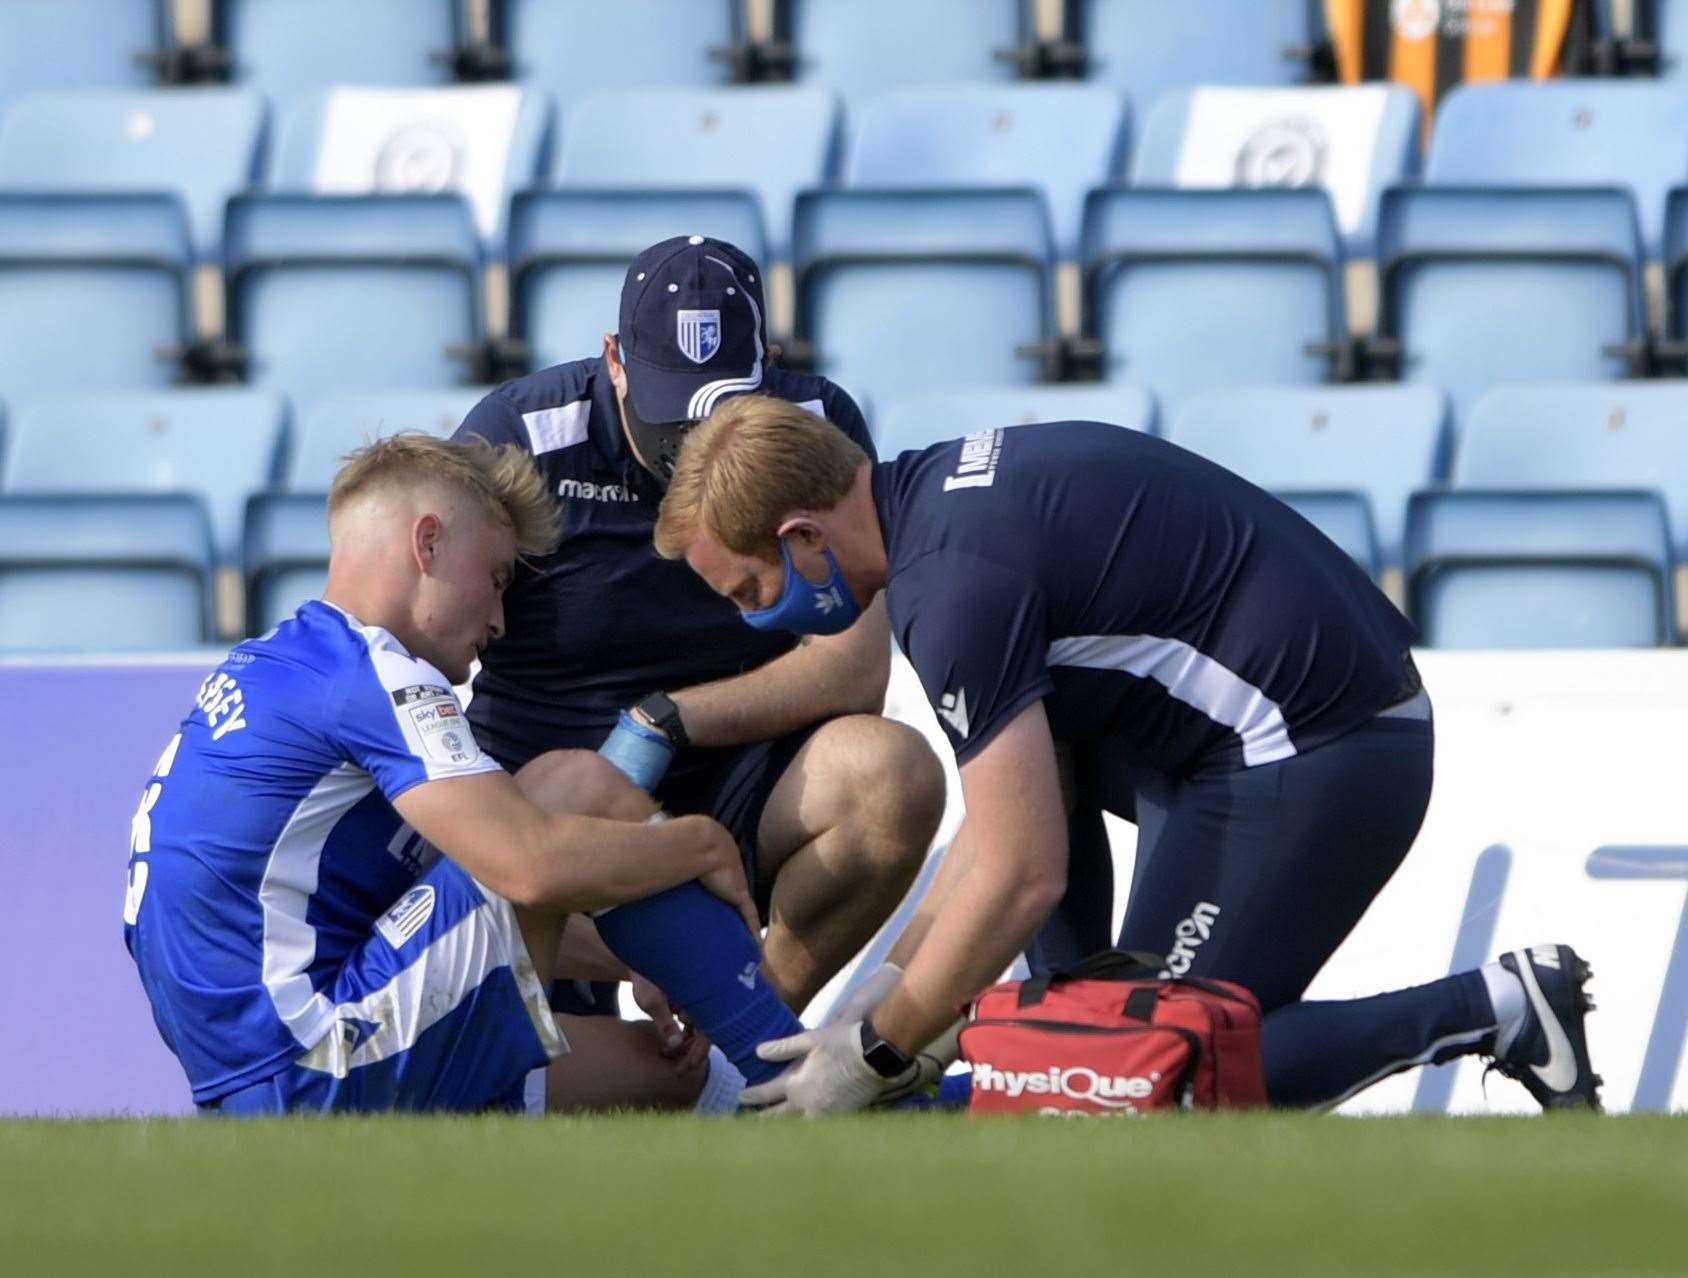 Kyle Dempsey receives treatment after suffering an ankle injury Picture: Barry Goodwin